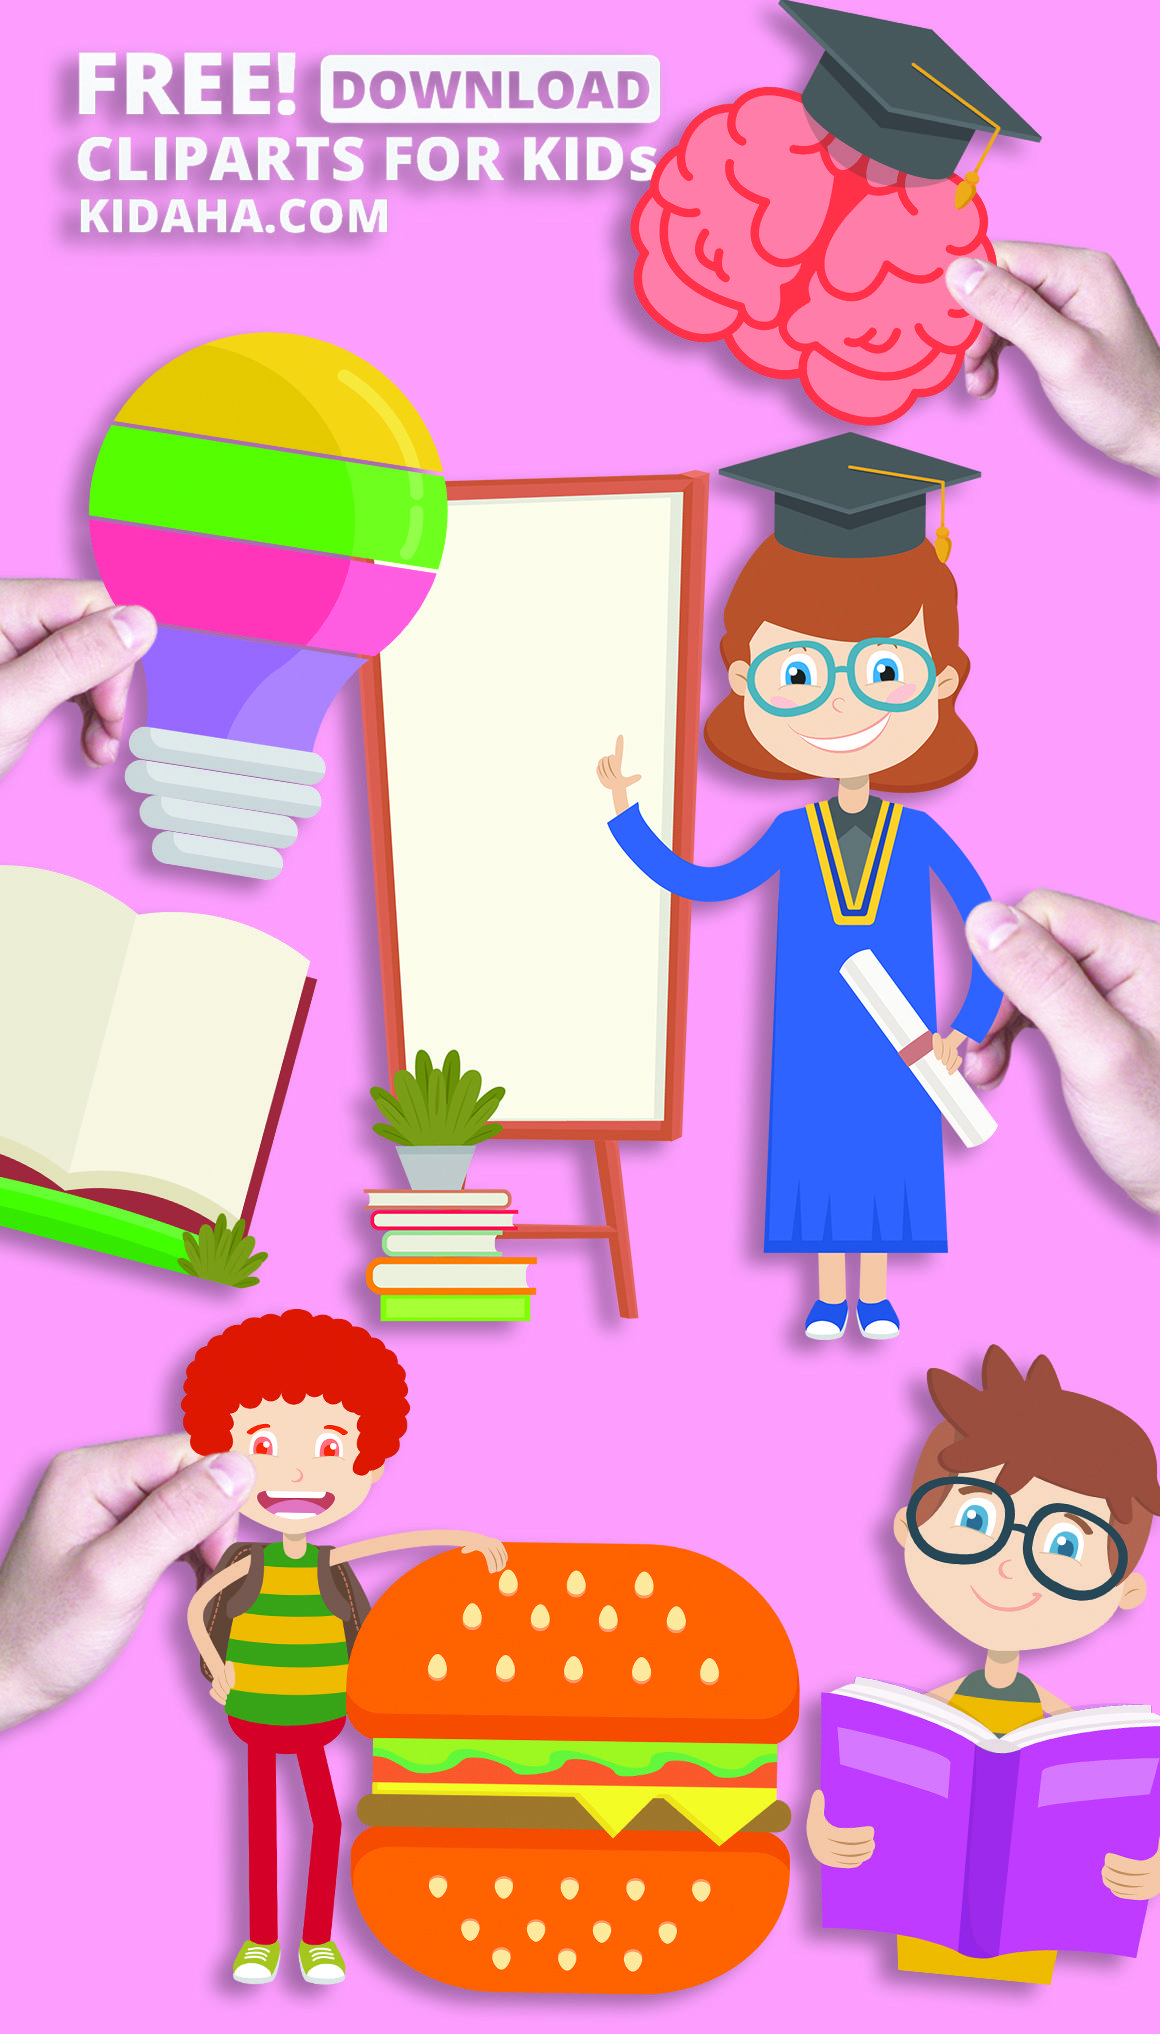 creative kid graphic and cartoon clipart for children or teaching